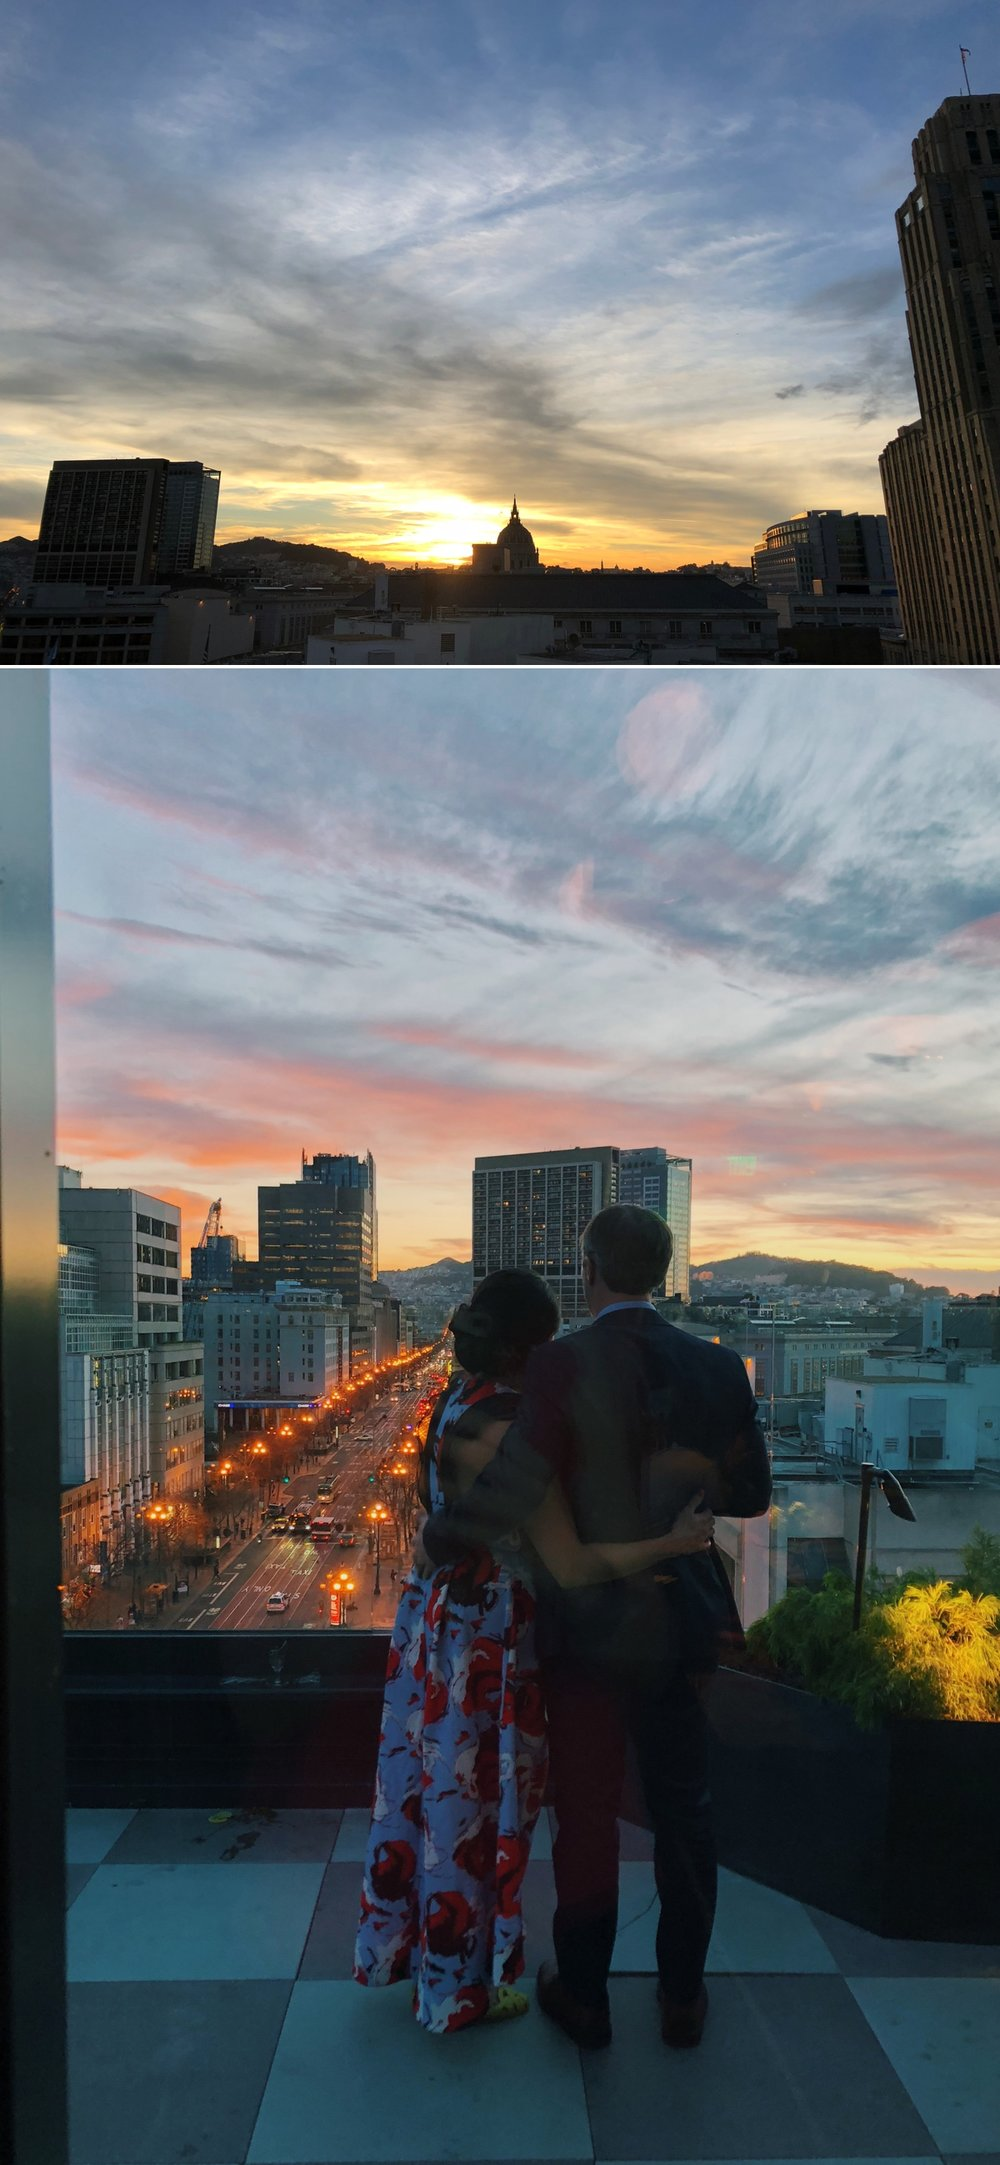 The bride and groom enjoy the sunset of their wedding night from The Proper Hotel in San Francisco.